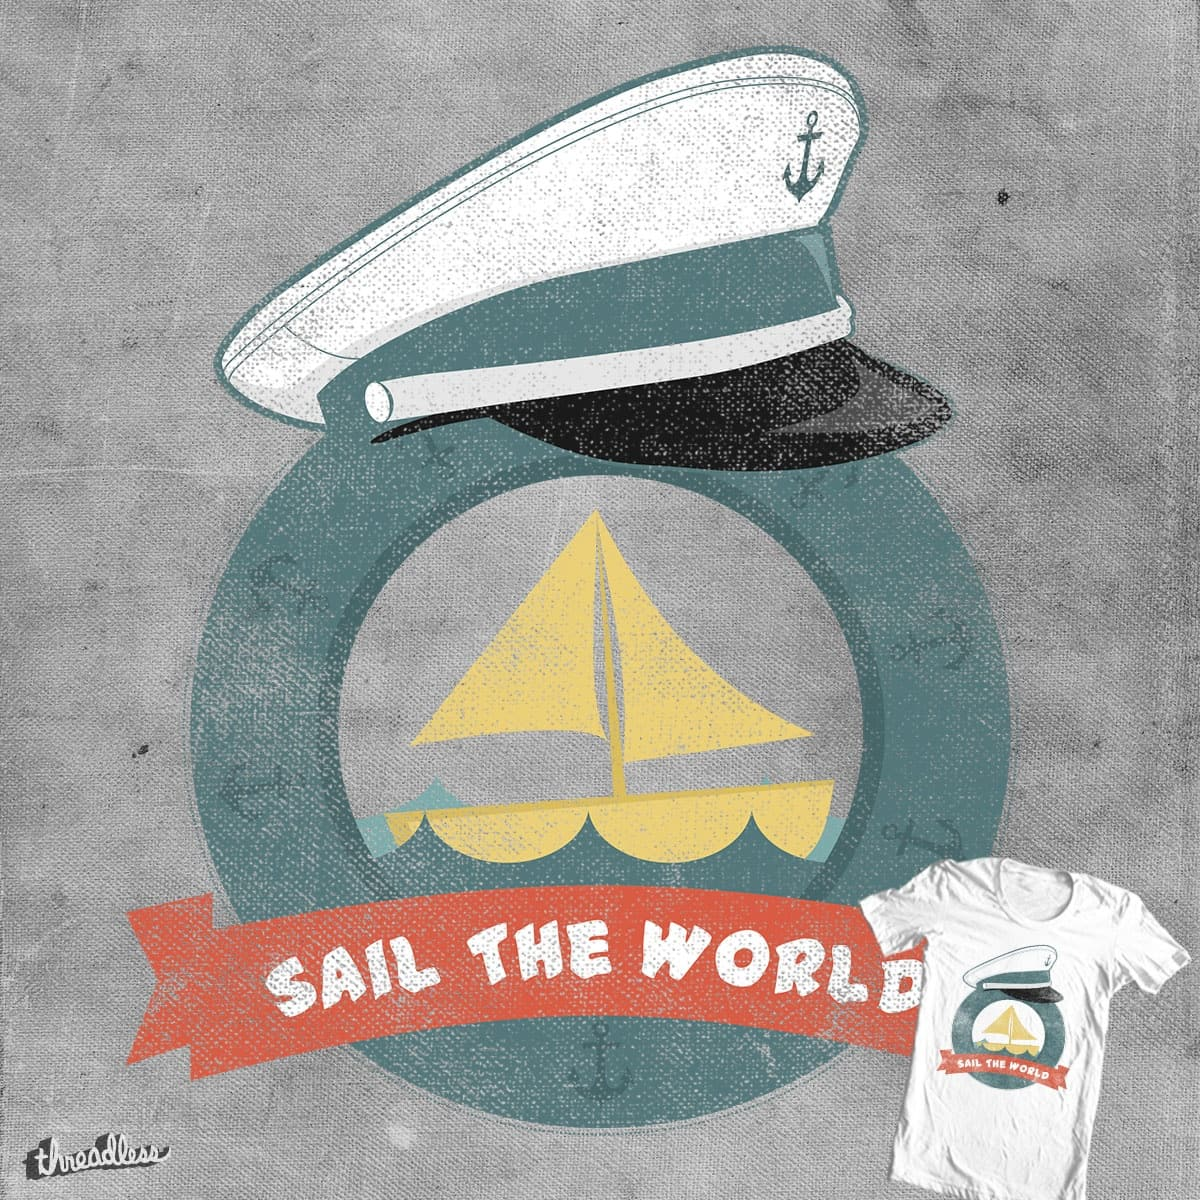 Sail The World! by Rejailz on Threadless